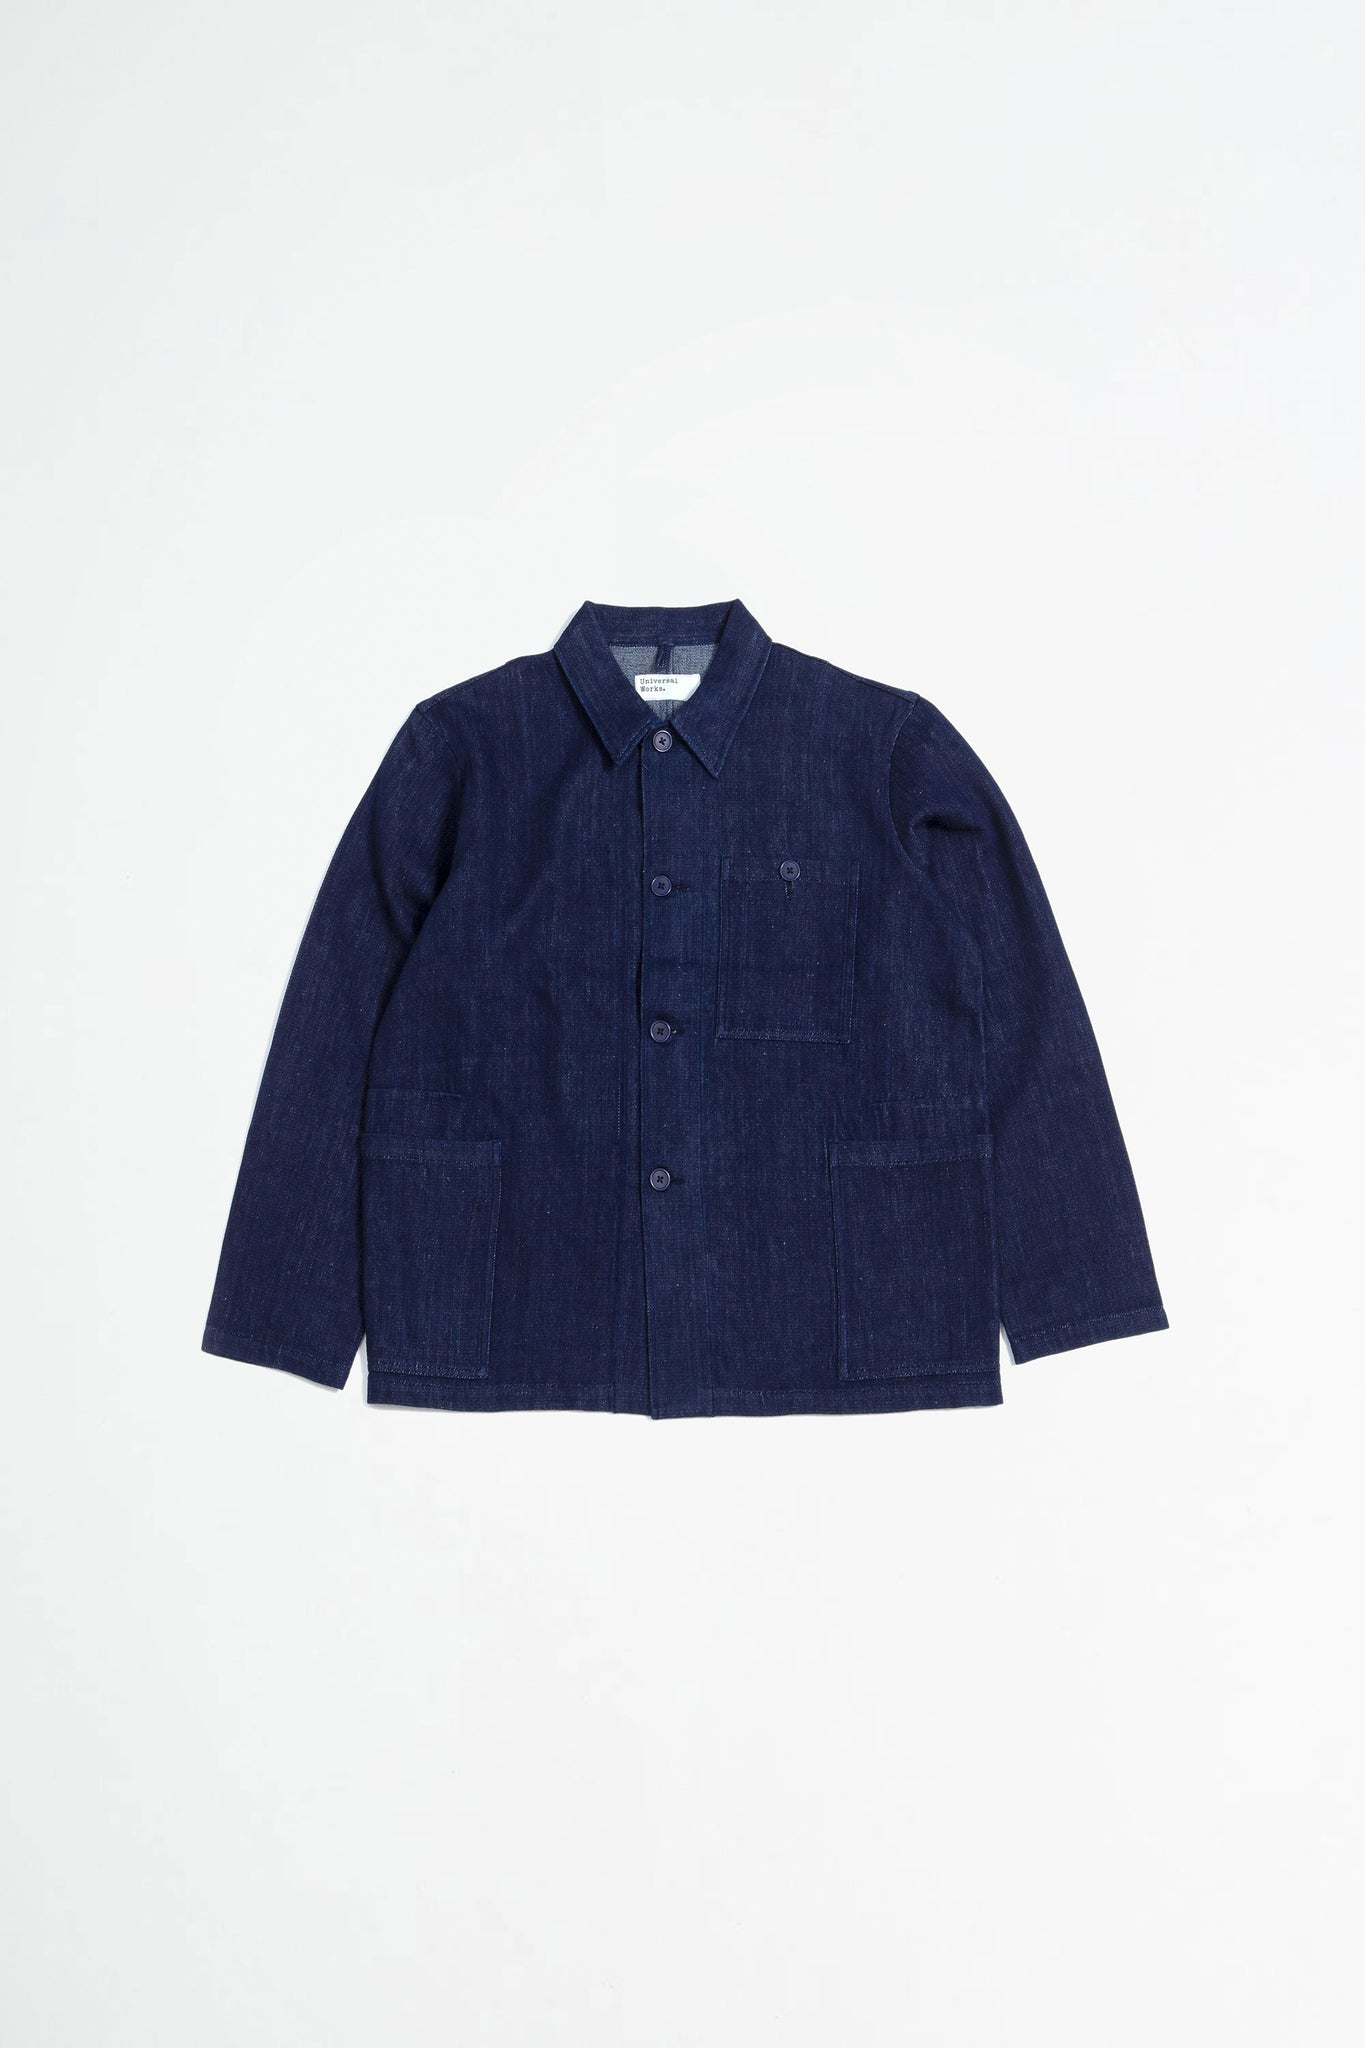 Labour jacket II denim indigo